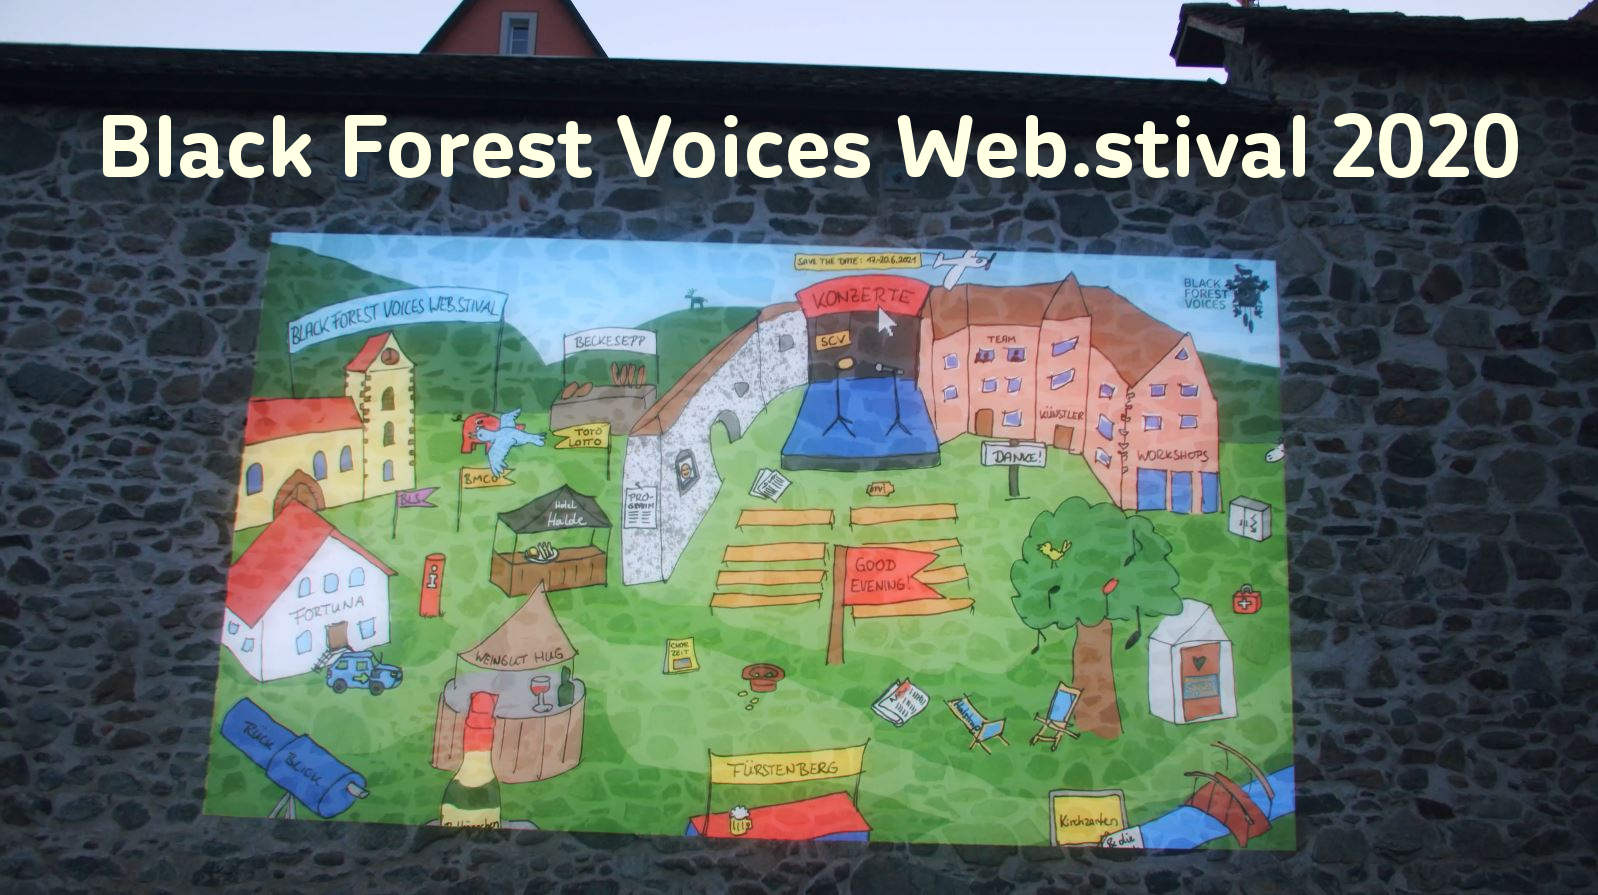 Black Forest Voices Web.stival